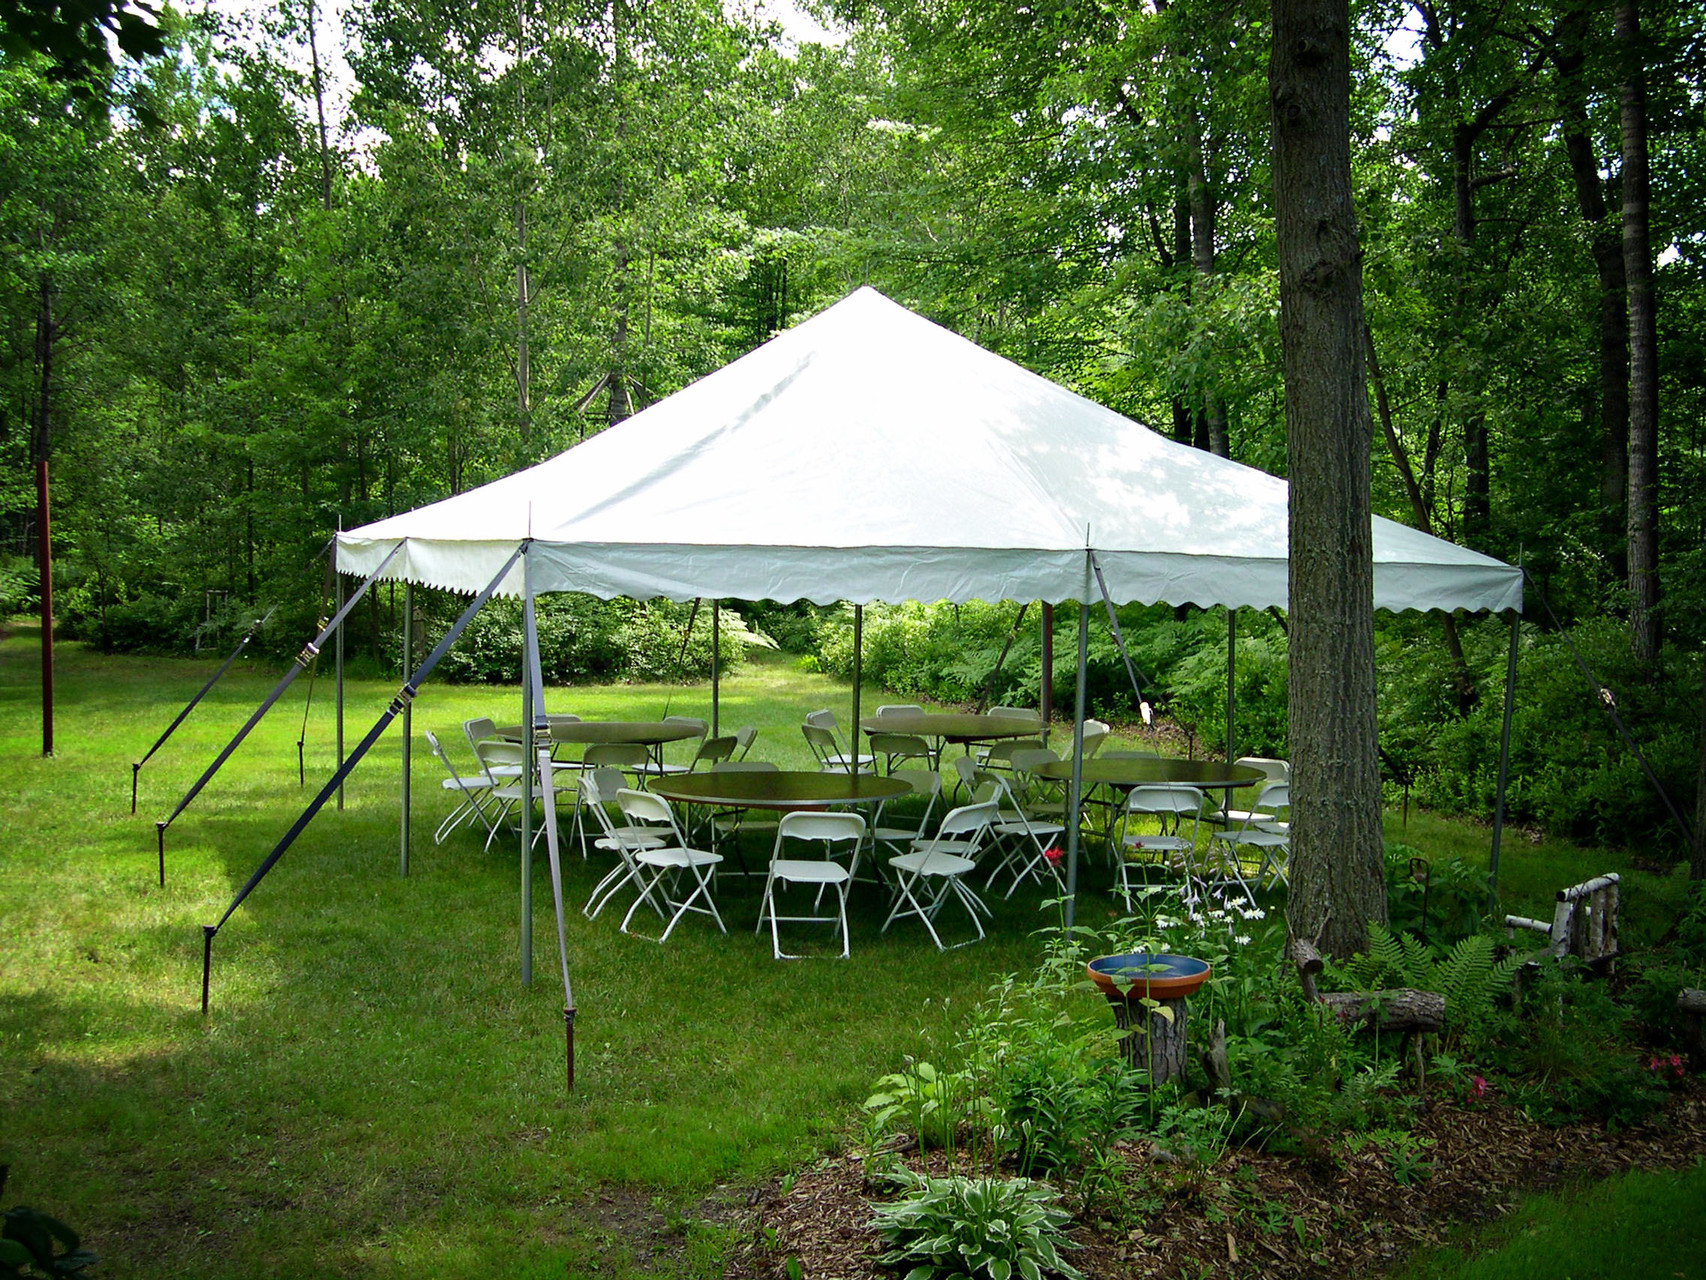 20 x 20 Pole tent with 4 round tables and 32 chairs